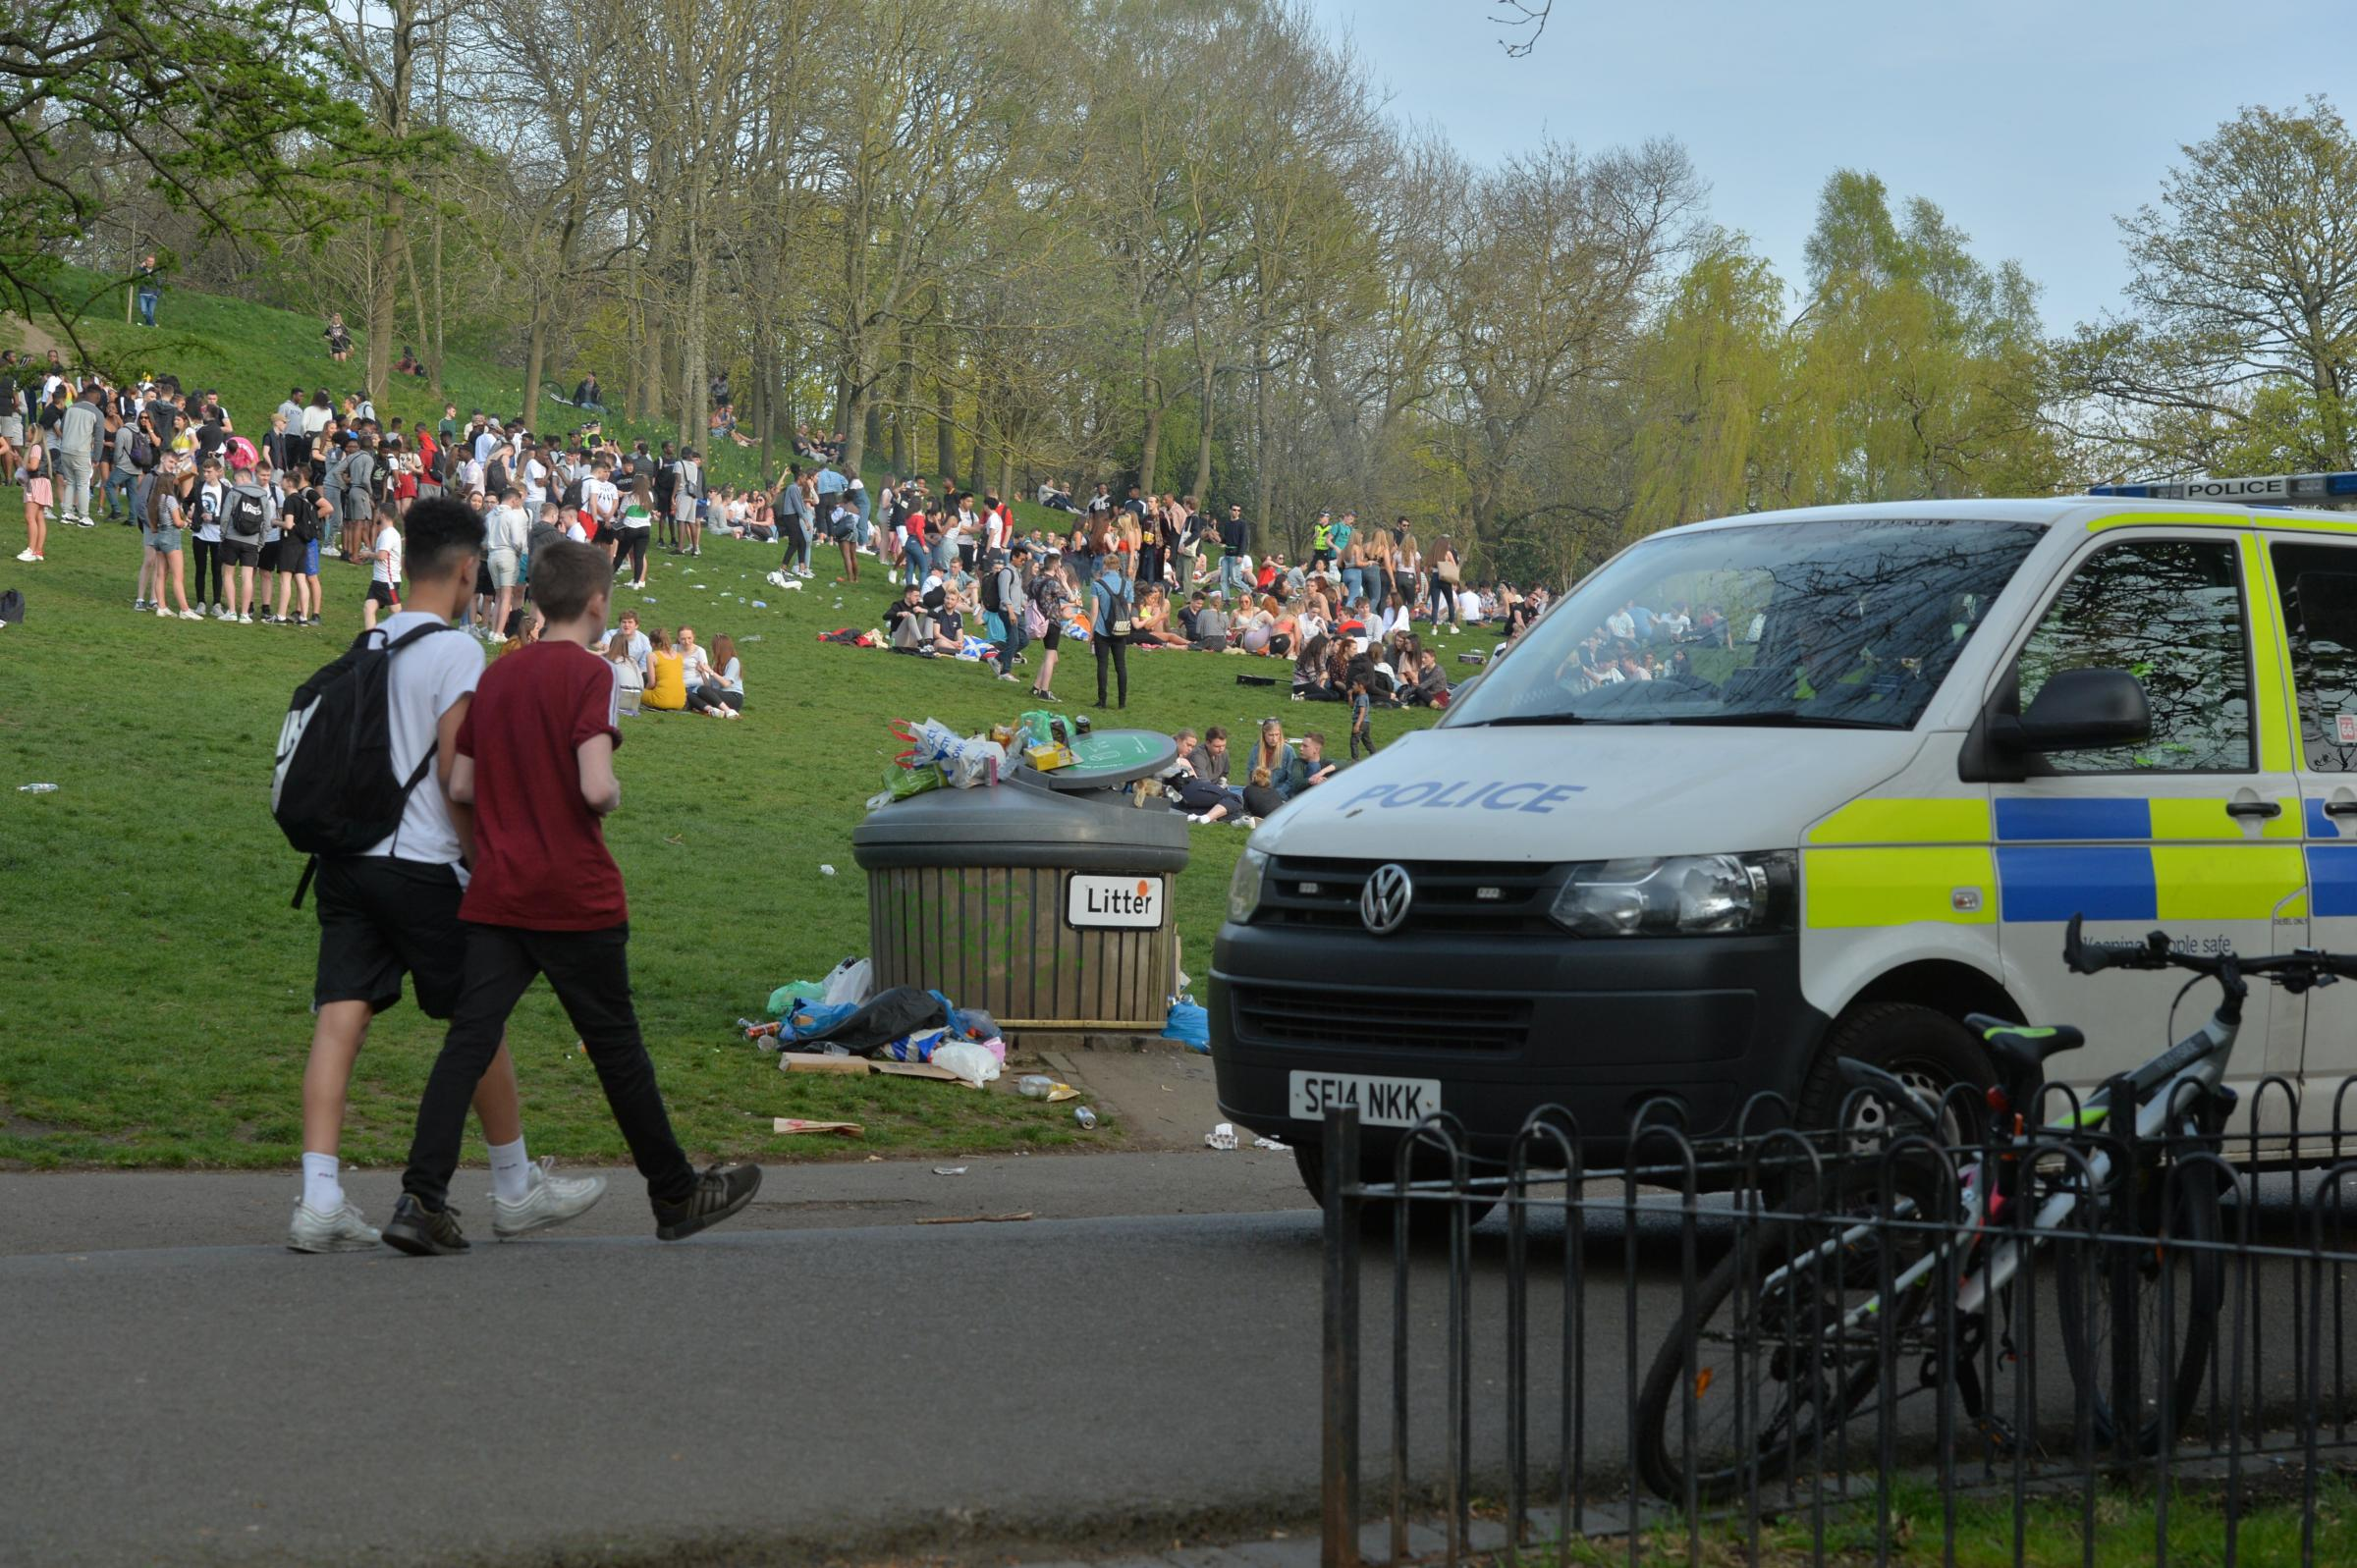 Multiple arrests made following 'disturbance' at Kelvingrove Park